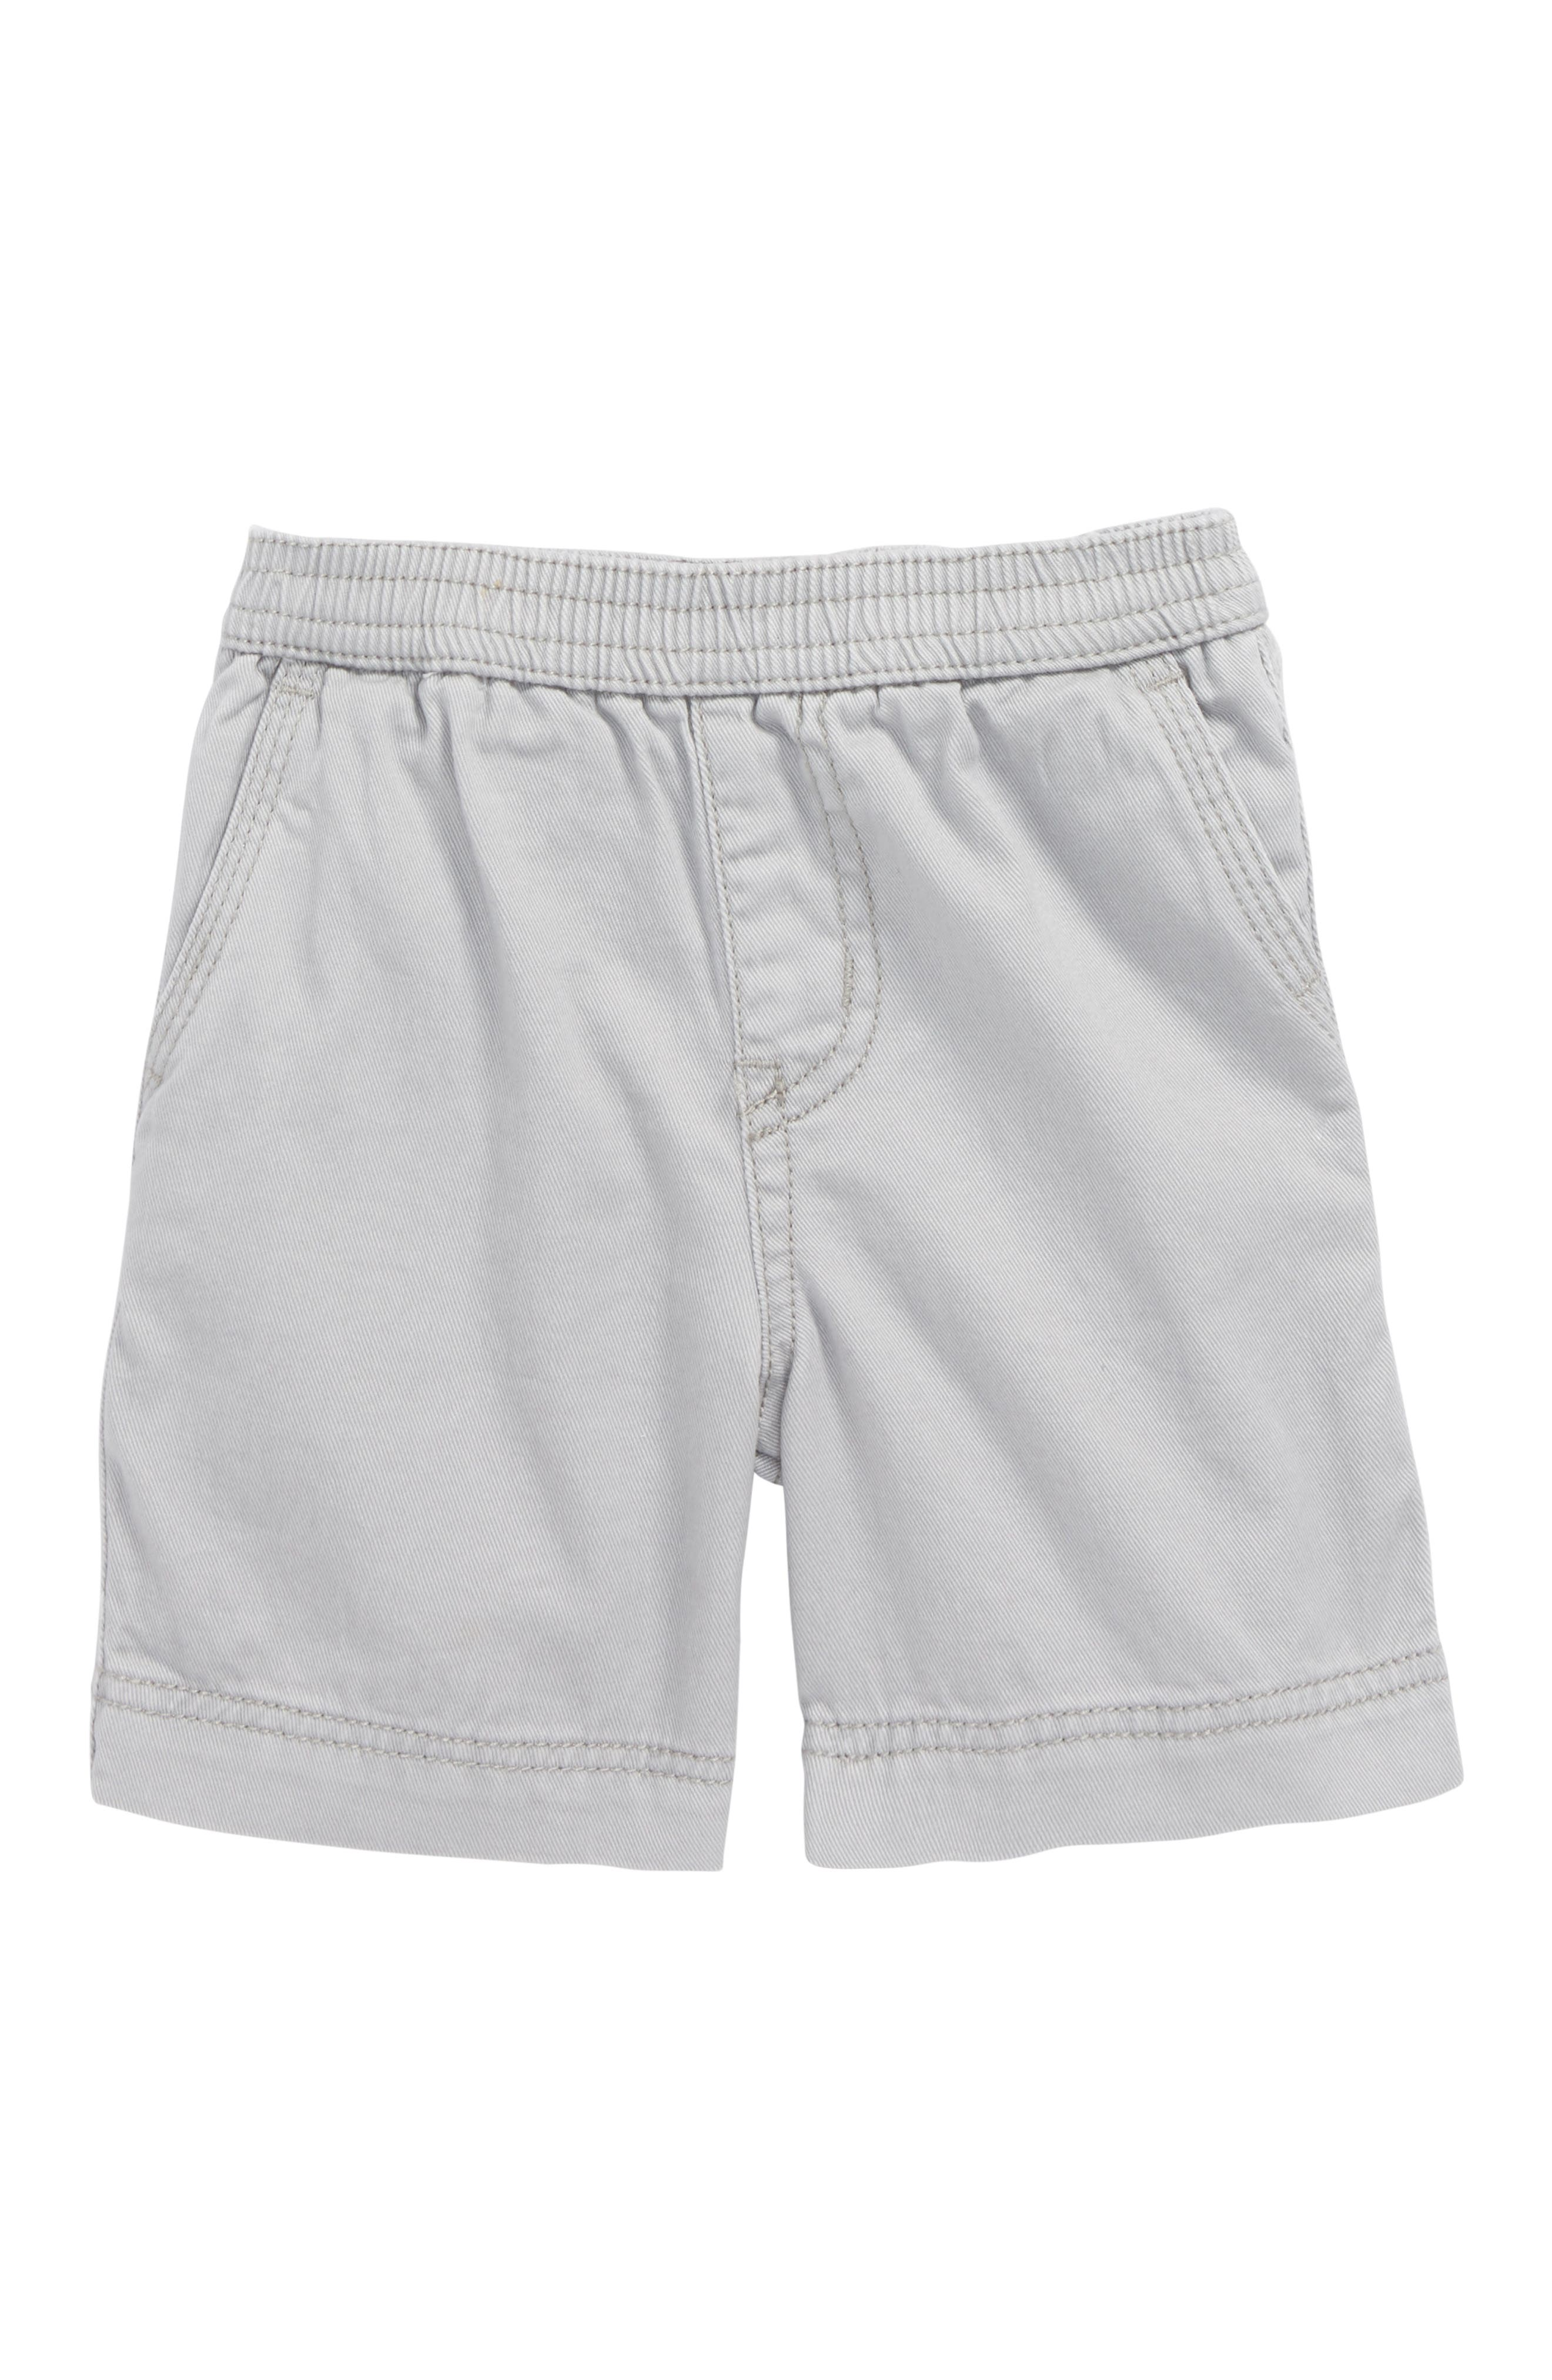 Easy Does It Twill Shorts,                             Main thumbnail 1, color,                             052